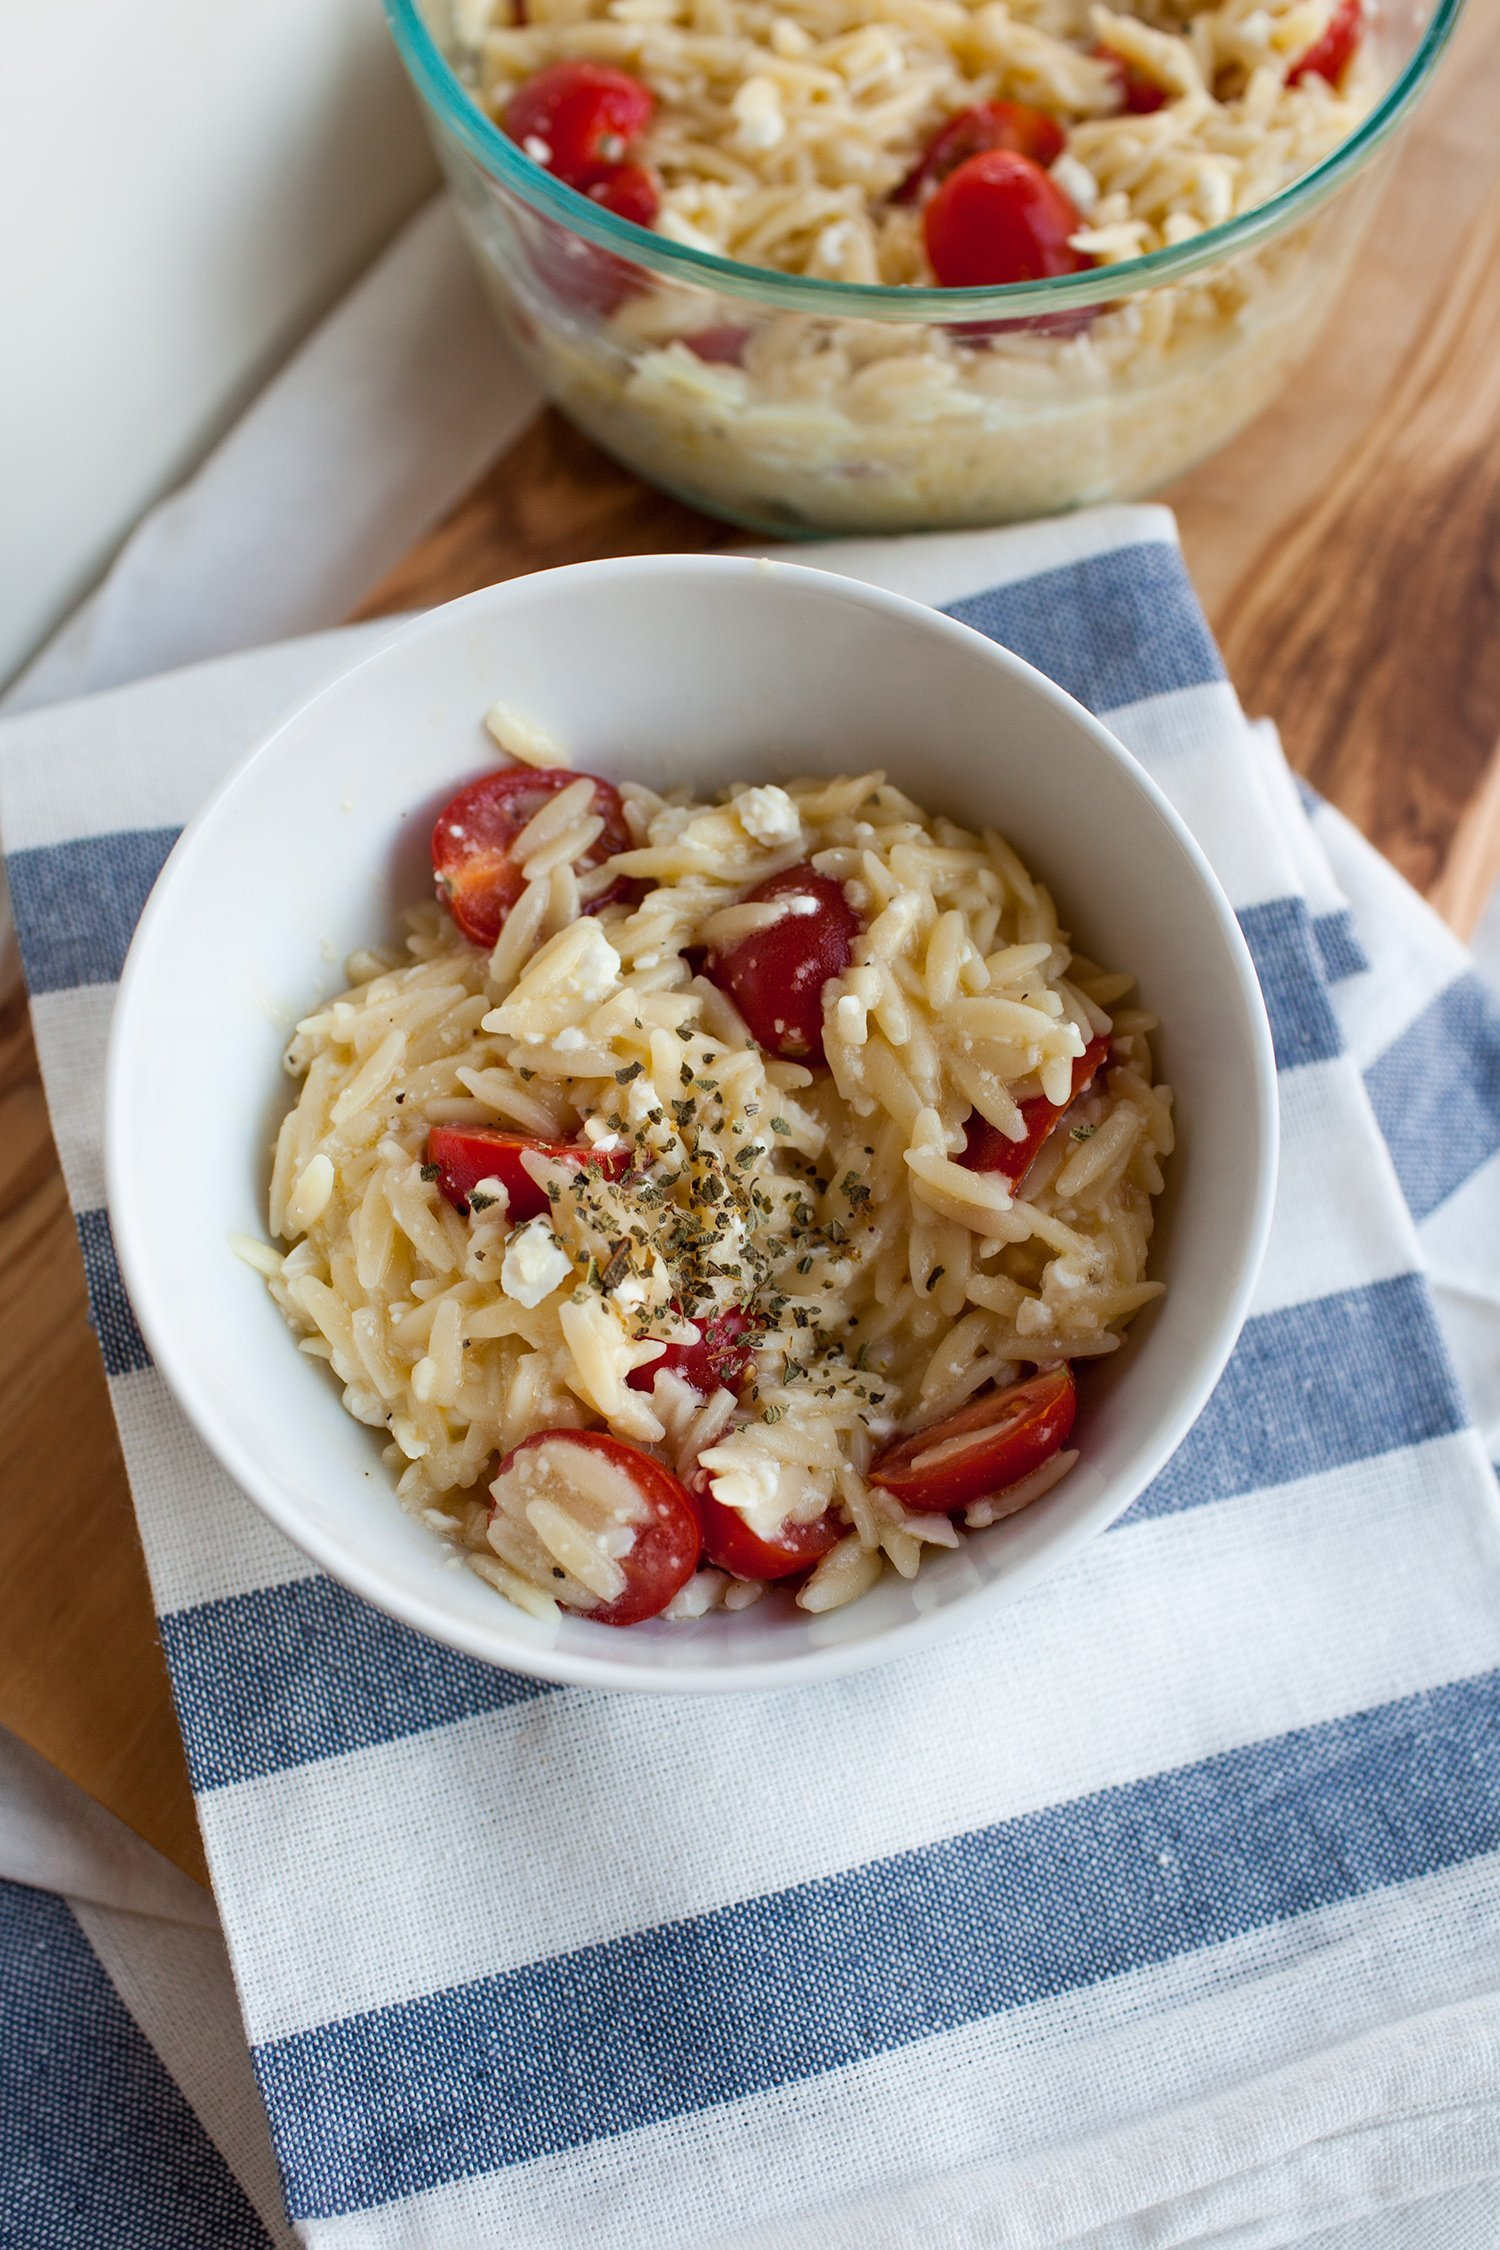 This lemon orzo pasta is the perfect summer side dish! It's so quick and easy to make.